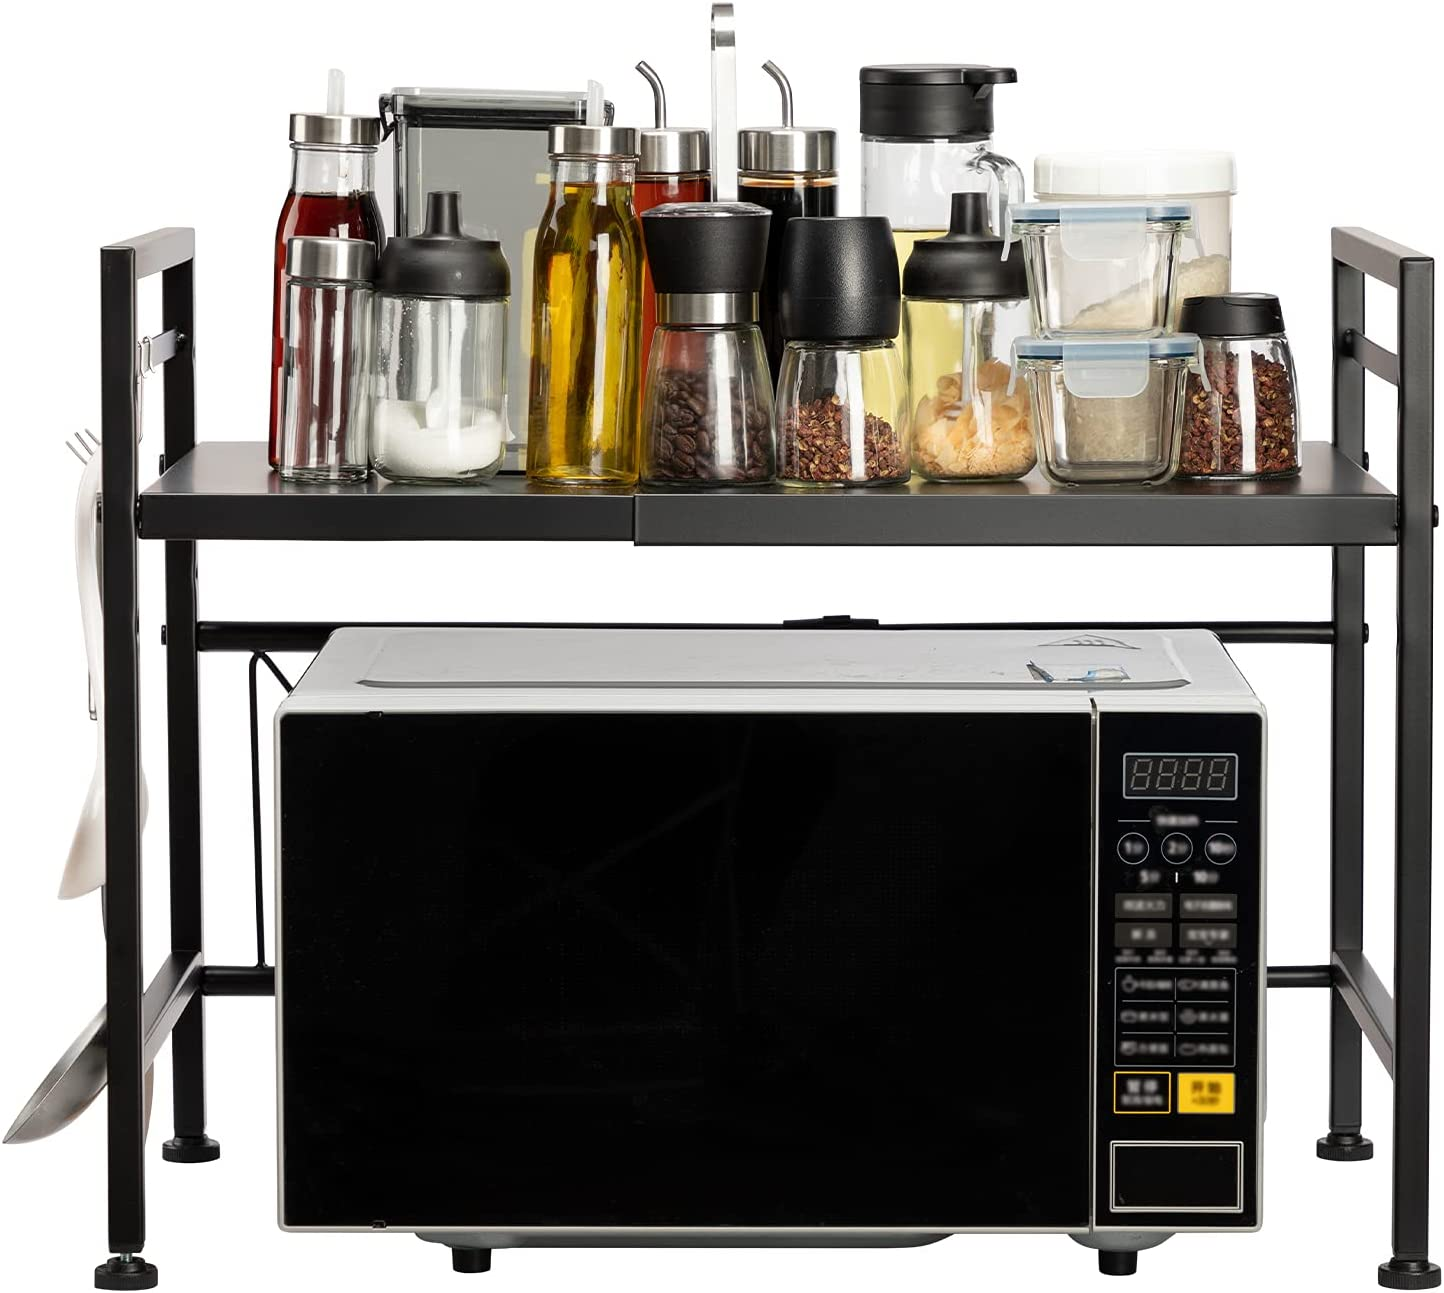 AbocoFur Expandable and Height Adjustable Microwave Oven Rack, 2-Tier Metal Kitchen Counter Toaster and Rice Cooker Stand, Heavy Duty Tableware Storage Shelf with 3 Hooks, 15.7